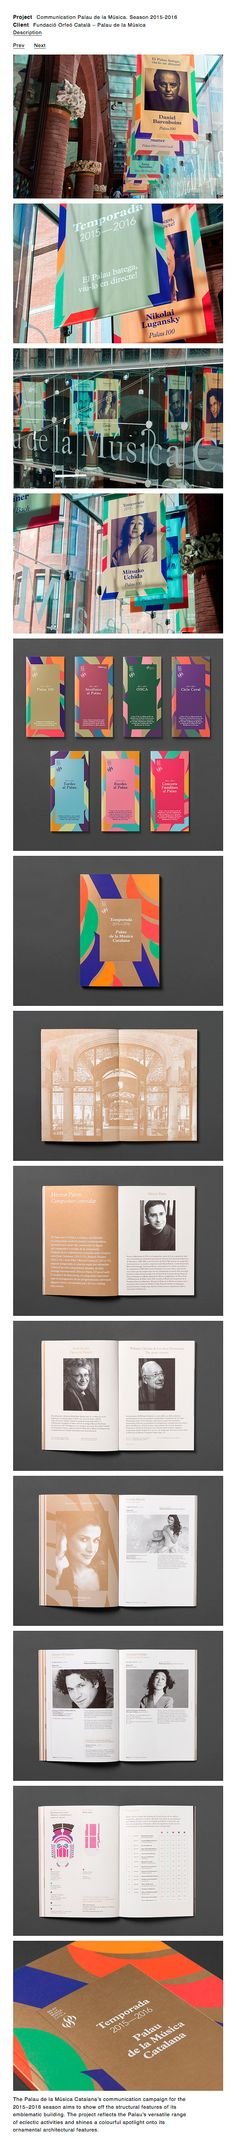 The Palau de la Música Catalana's communication campaign for the 2015–2016 season aims to show off the structural features of its emblematic building. The project reflects the Palau's versatile range of eclectic activities and shines a colourful spotlight onto its ornamental architectural features.